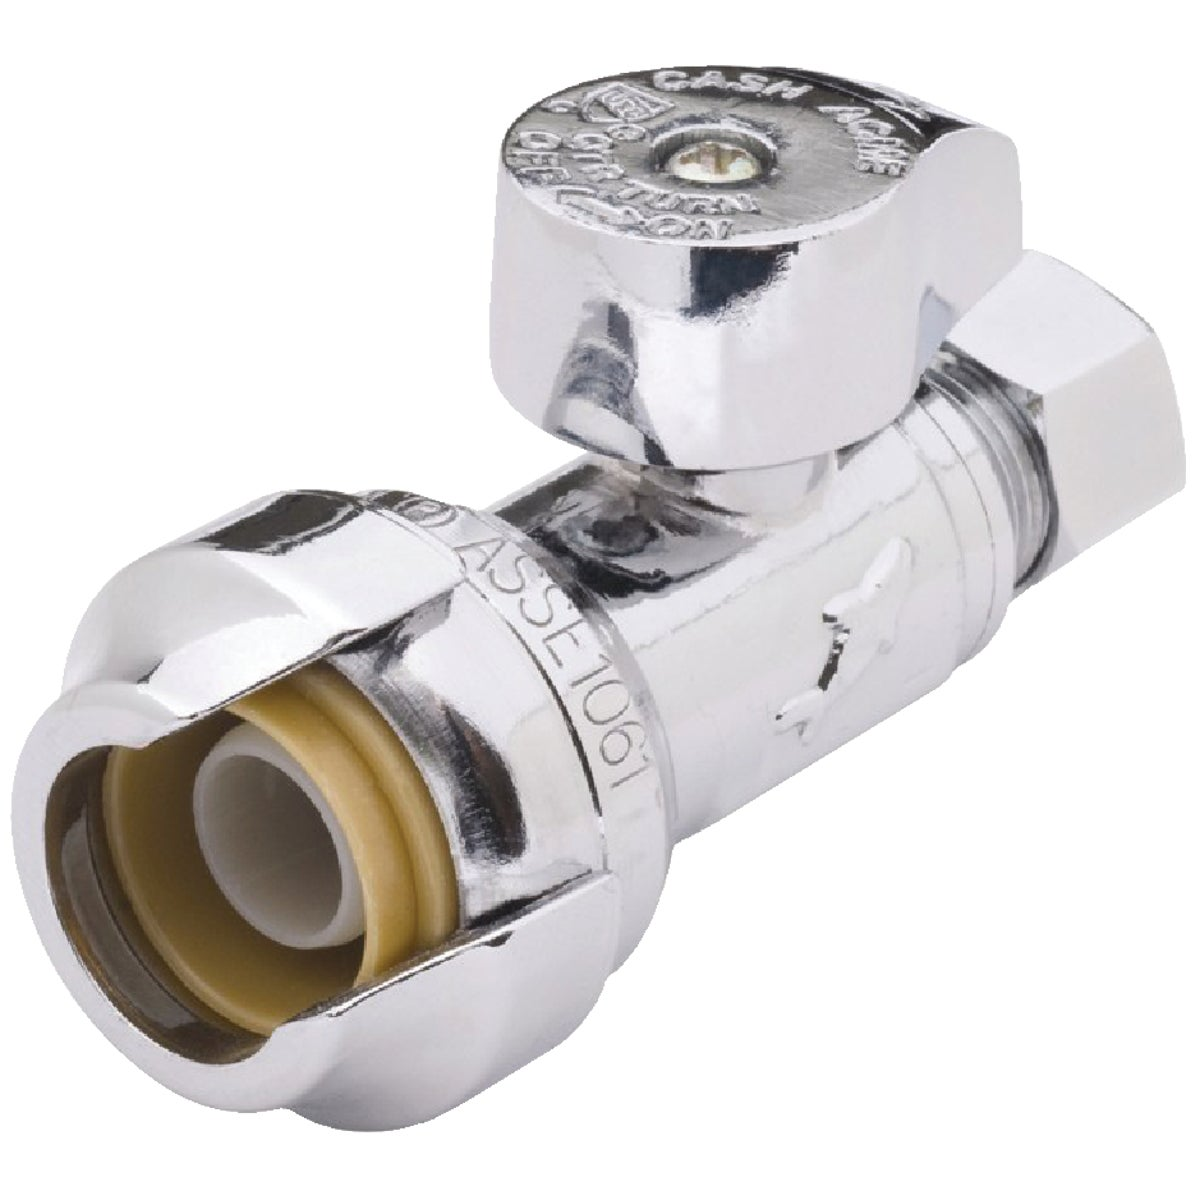 1/2X3/8 STR STOP VALVE - 23037-0000LF by Cash Acme